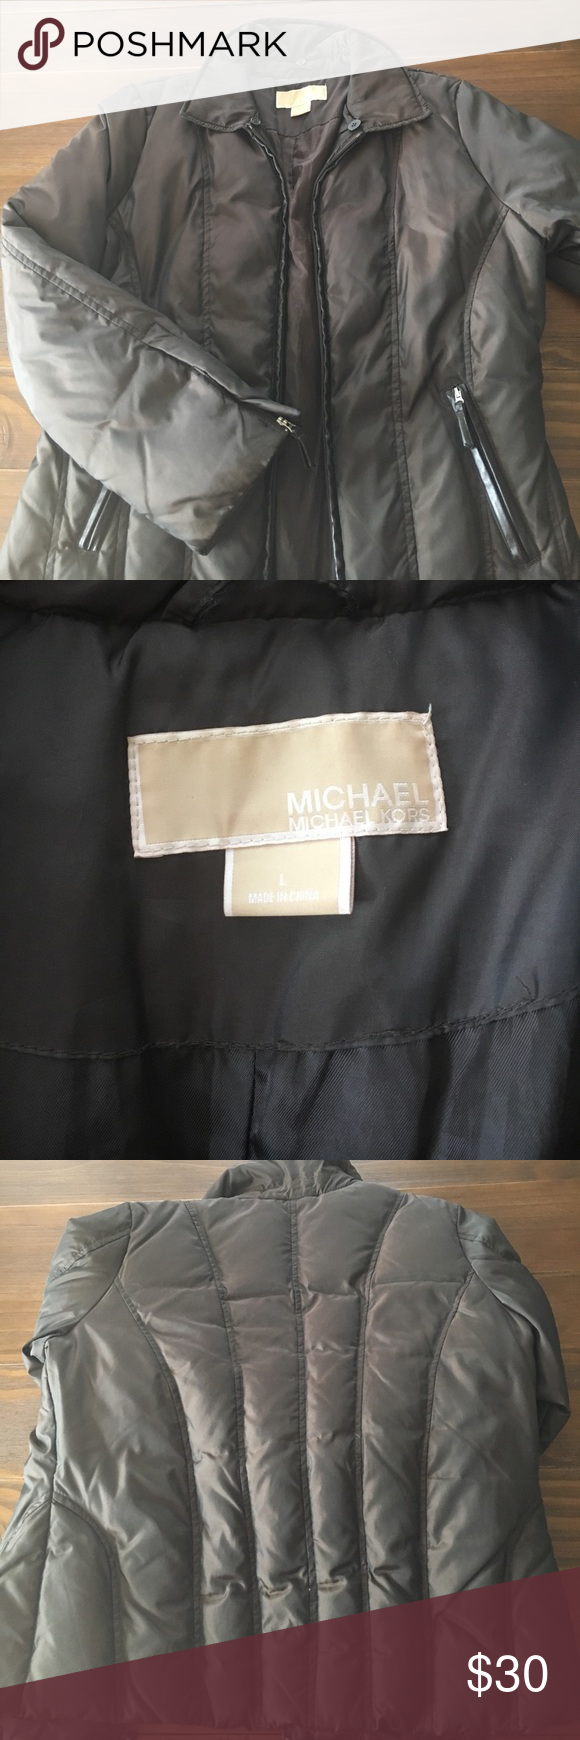 Michael Kors Puffy Jacket Dark brown with leather zipper snaps MICHAEL Michael Kors Jackets & Coats Puffers